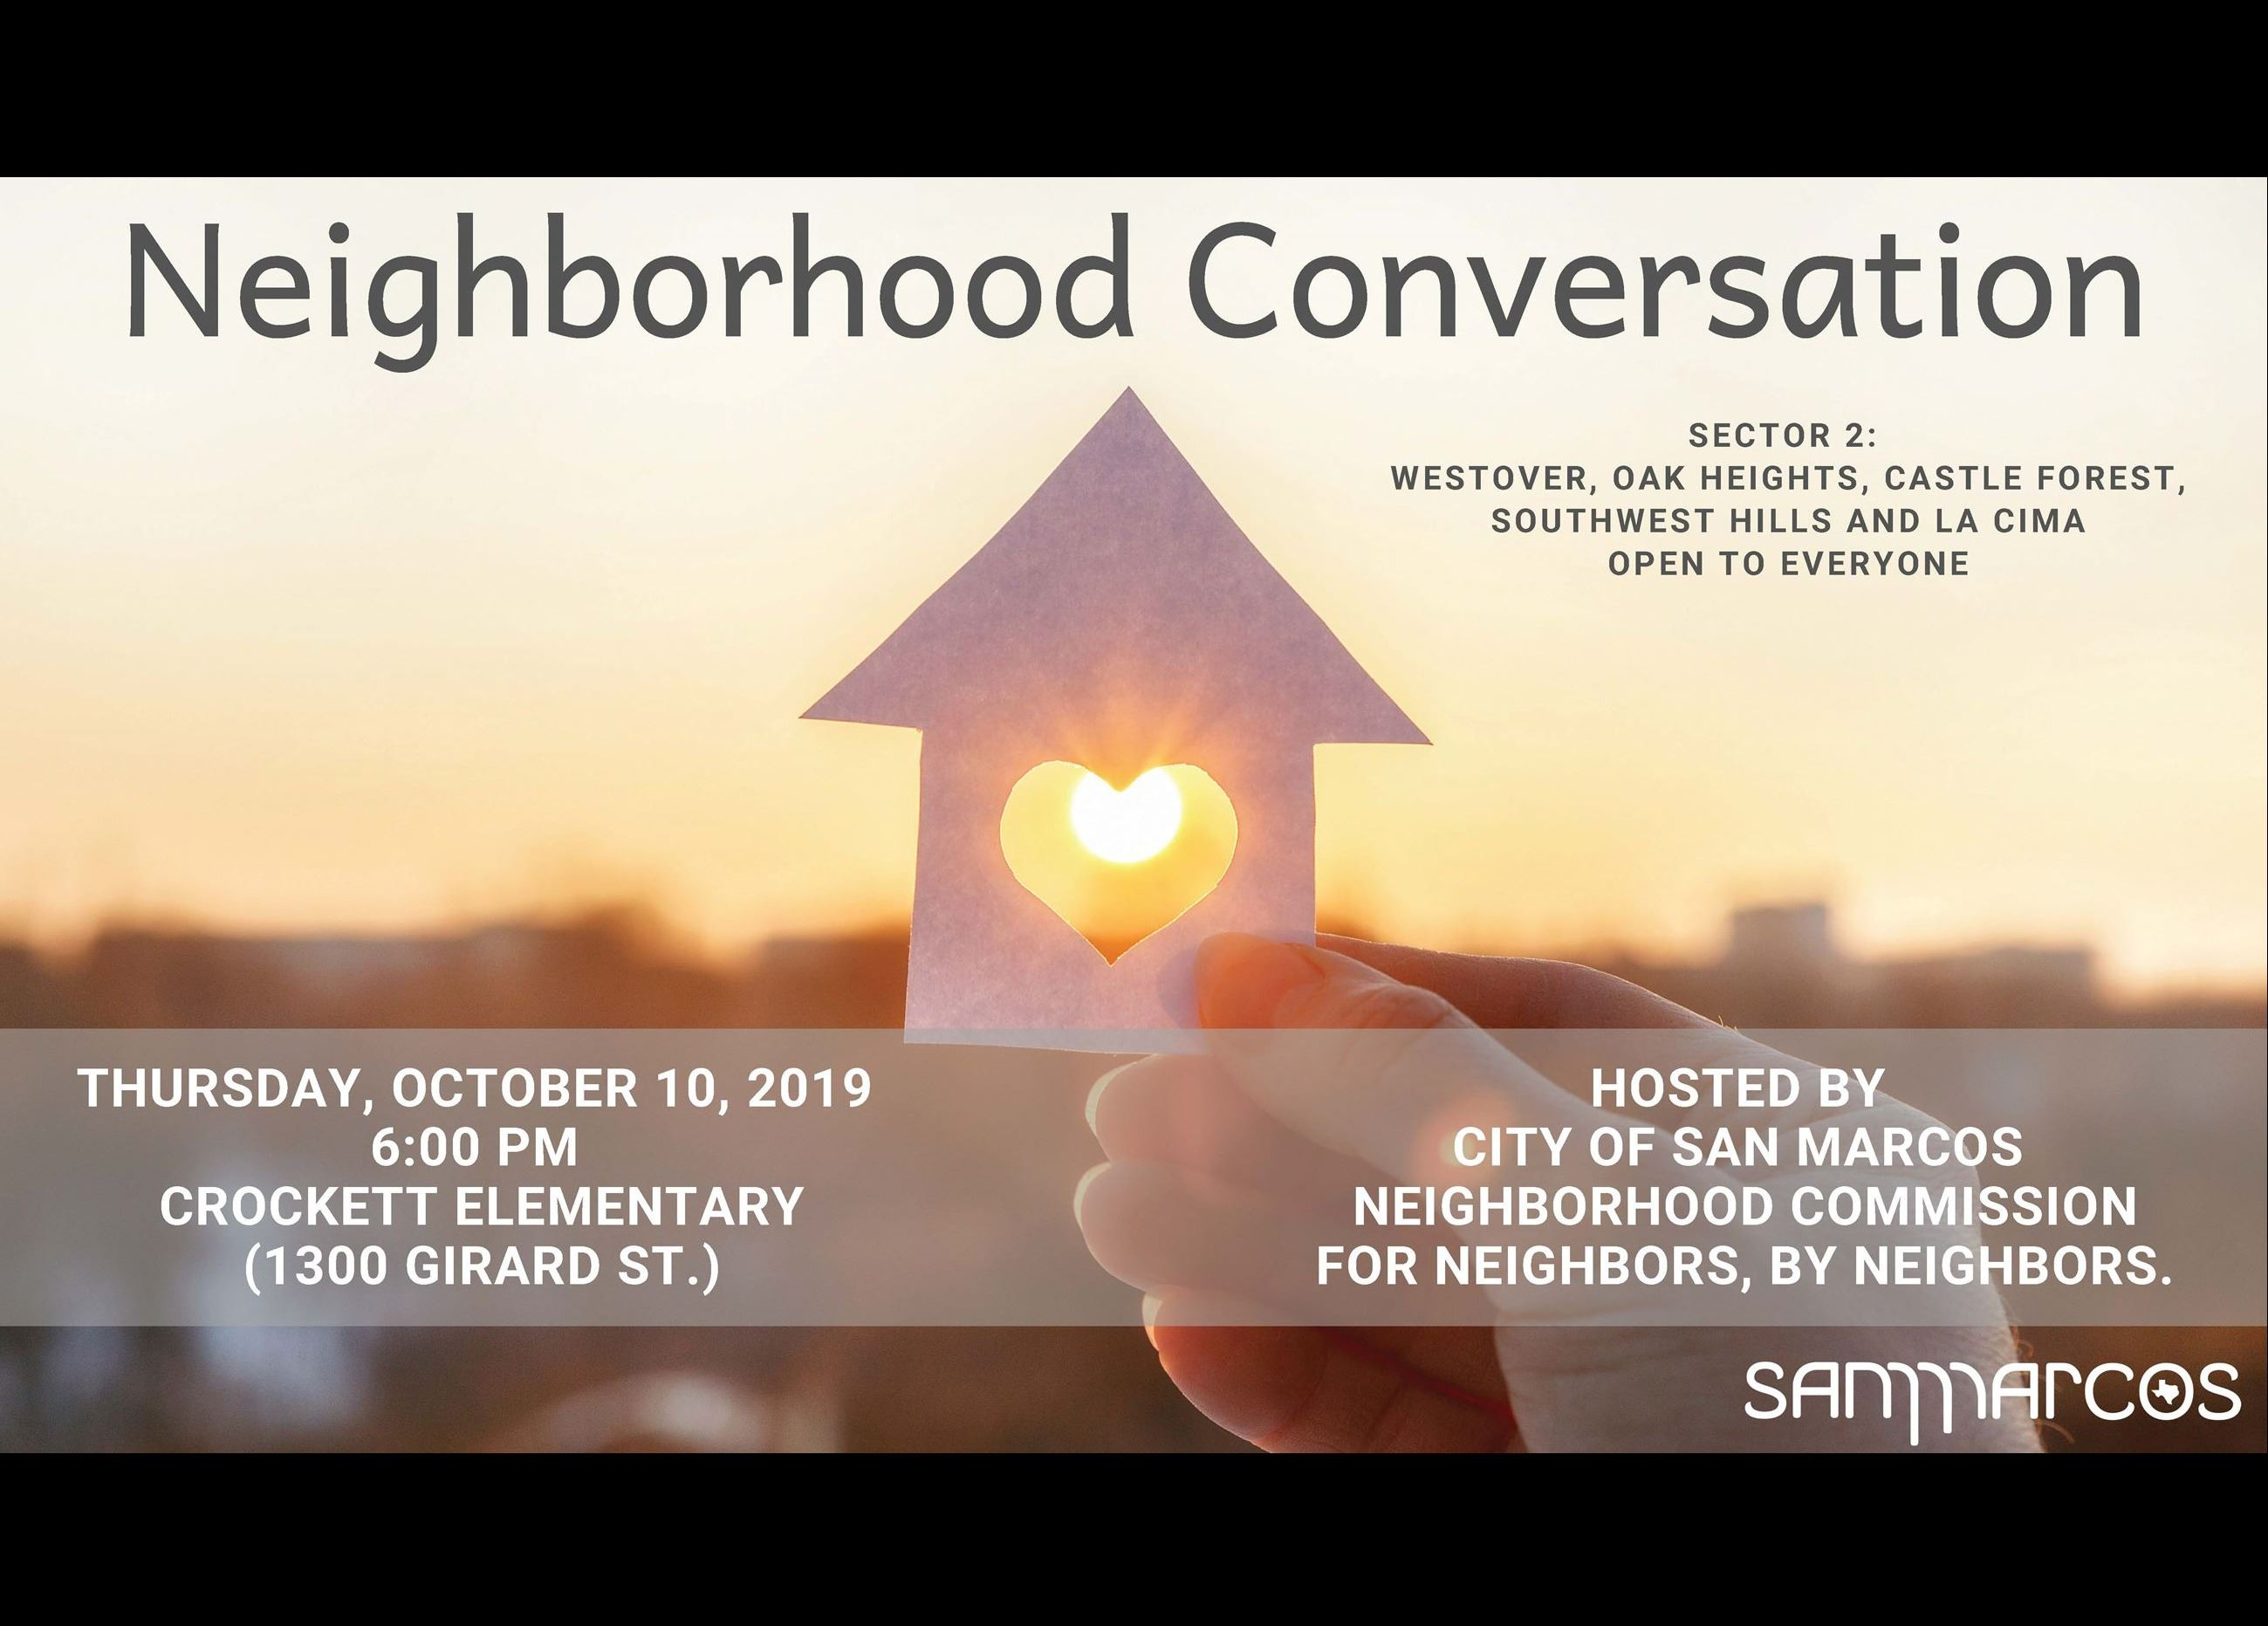 Neighborhood Conversation flyer